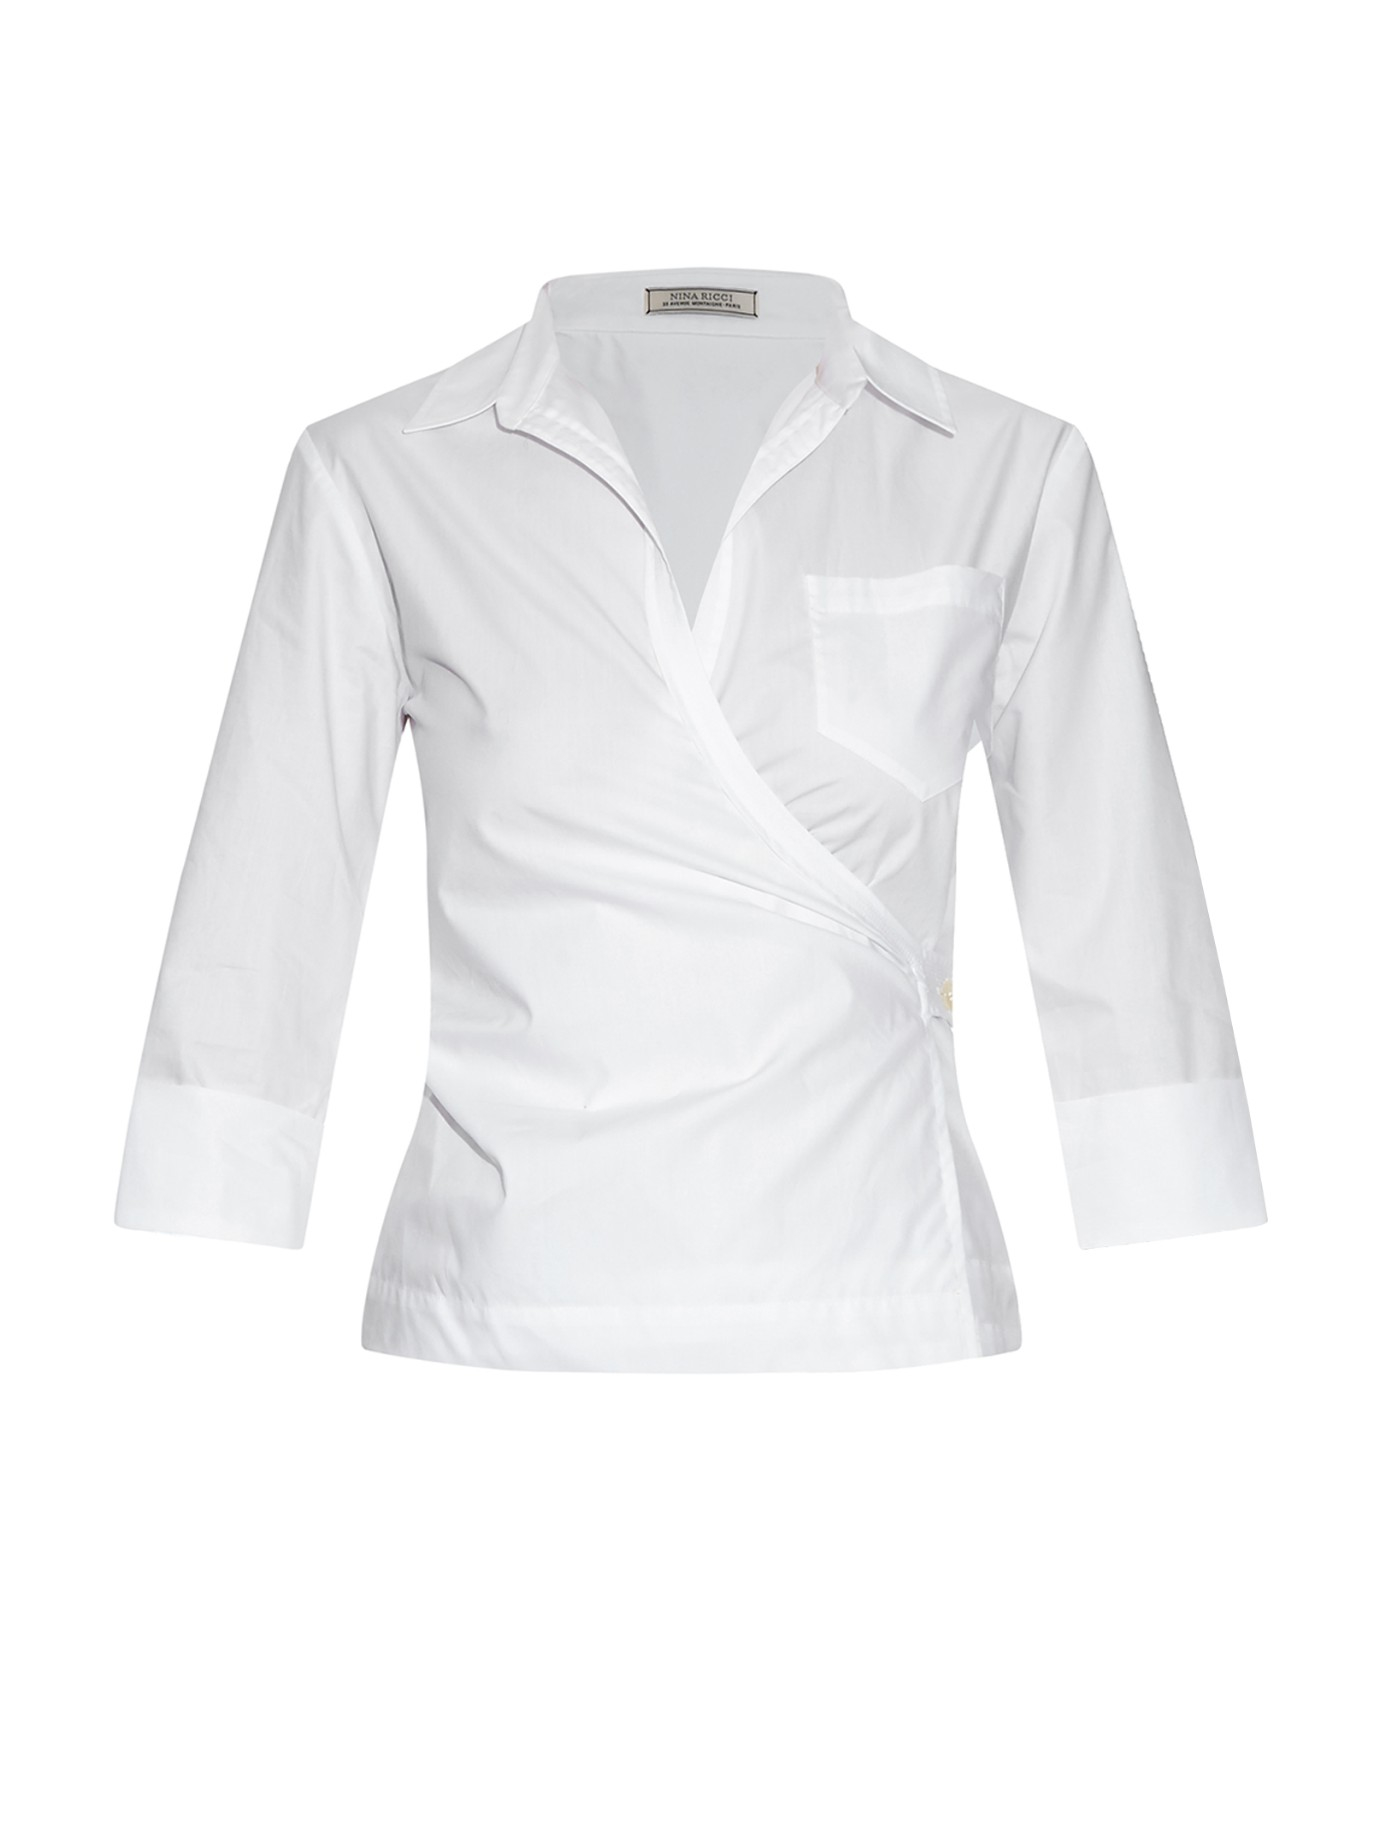 Nina ricci Cotton-poplin Wraparound Shirt in White | Lyst